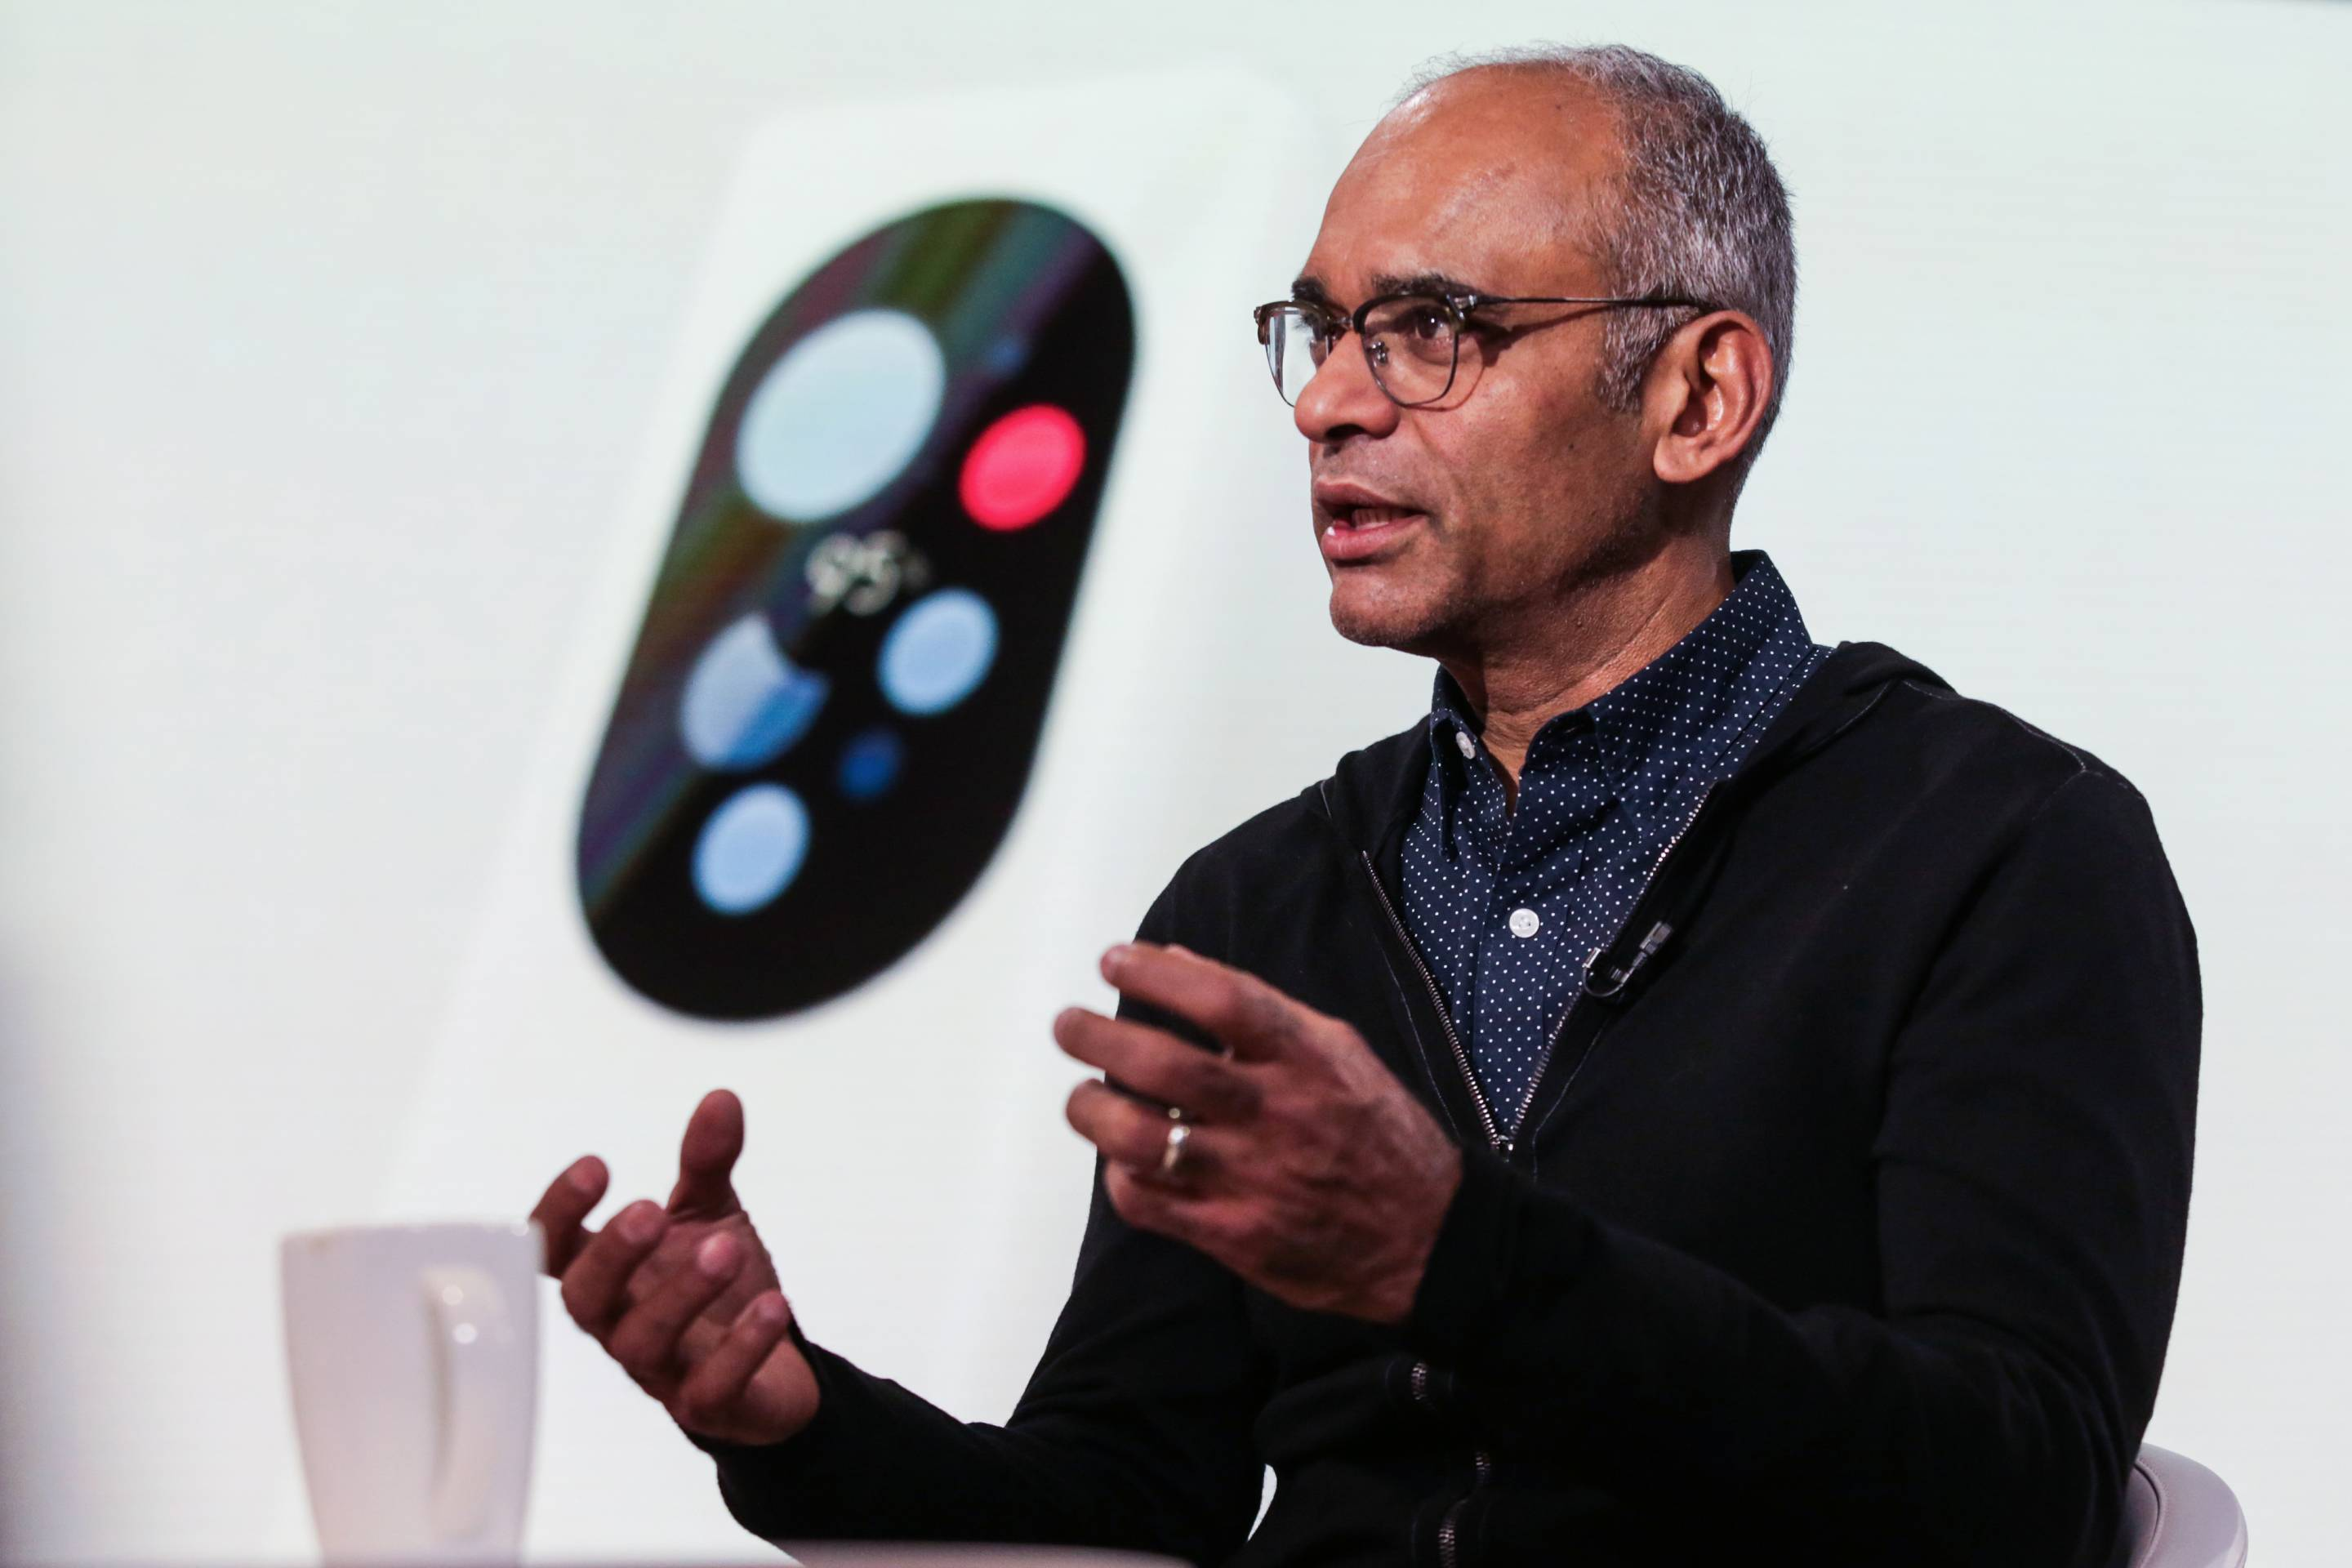 Aereo Inc. Founder Chet Kanojia Interview